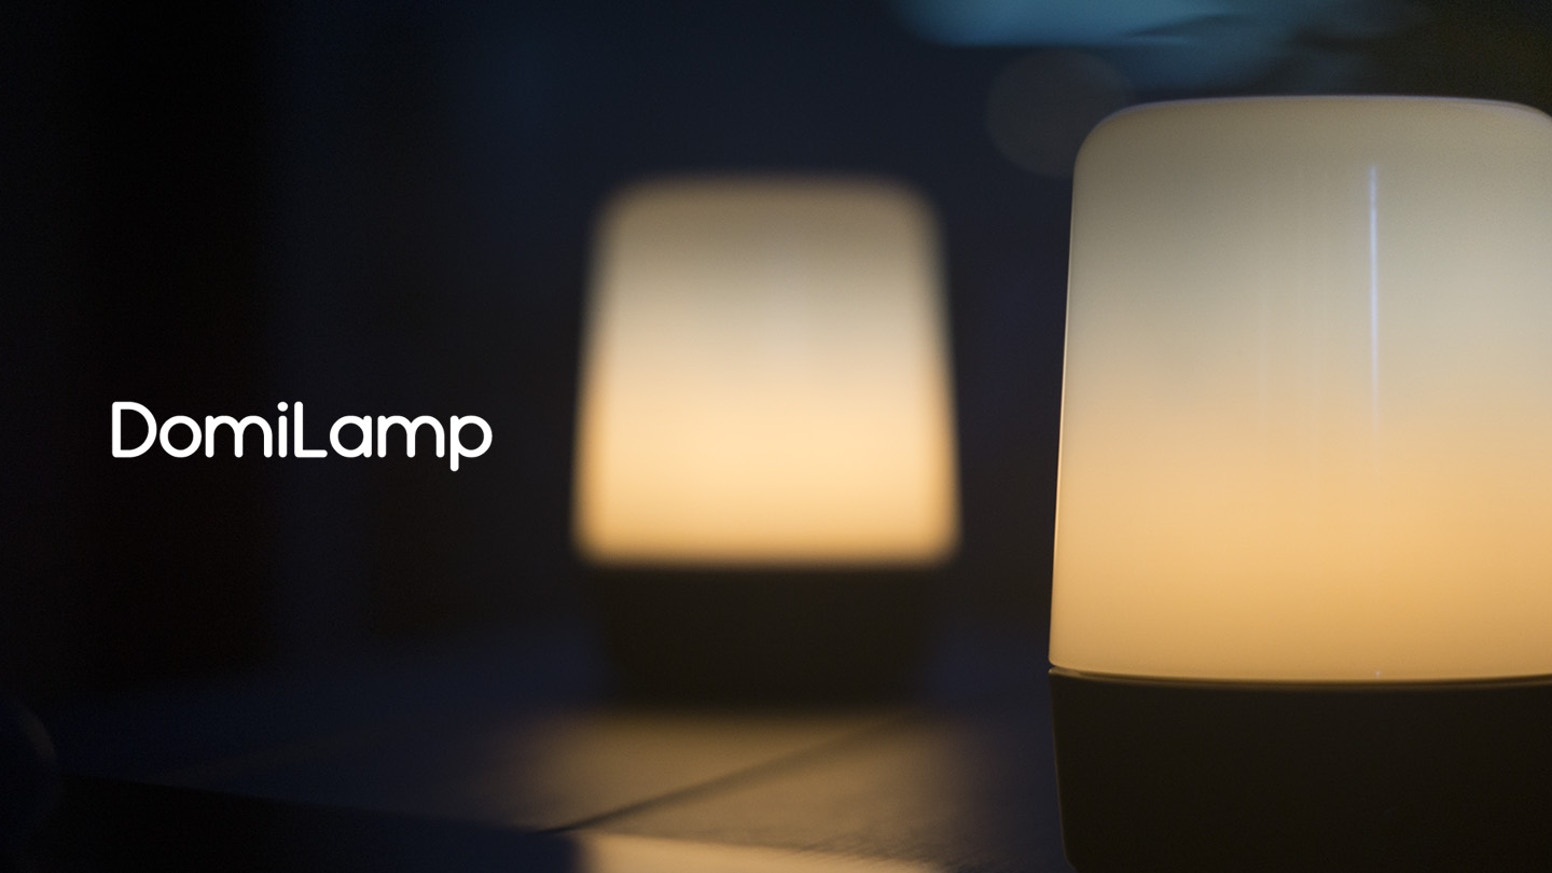 DomiLamp is an artistic wooden lamp with exquisite design and unique ability to interact with peers.